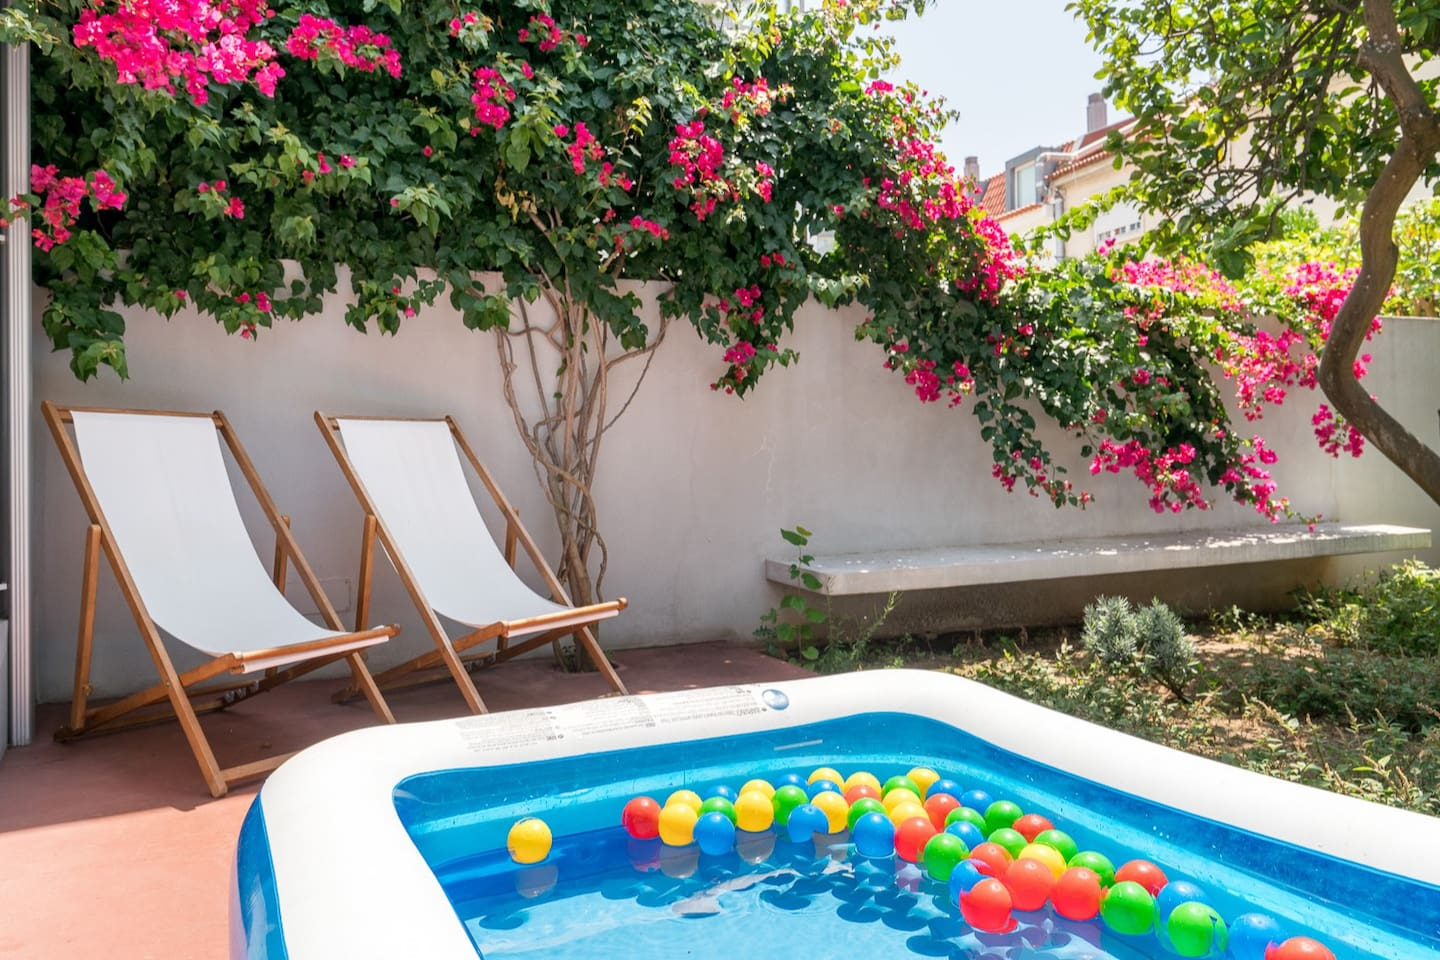 The private garden with swimming pool